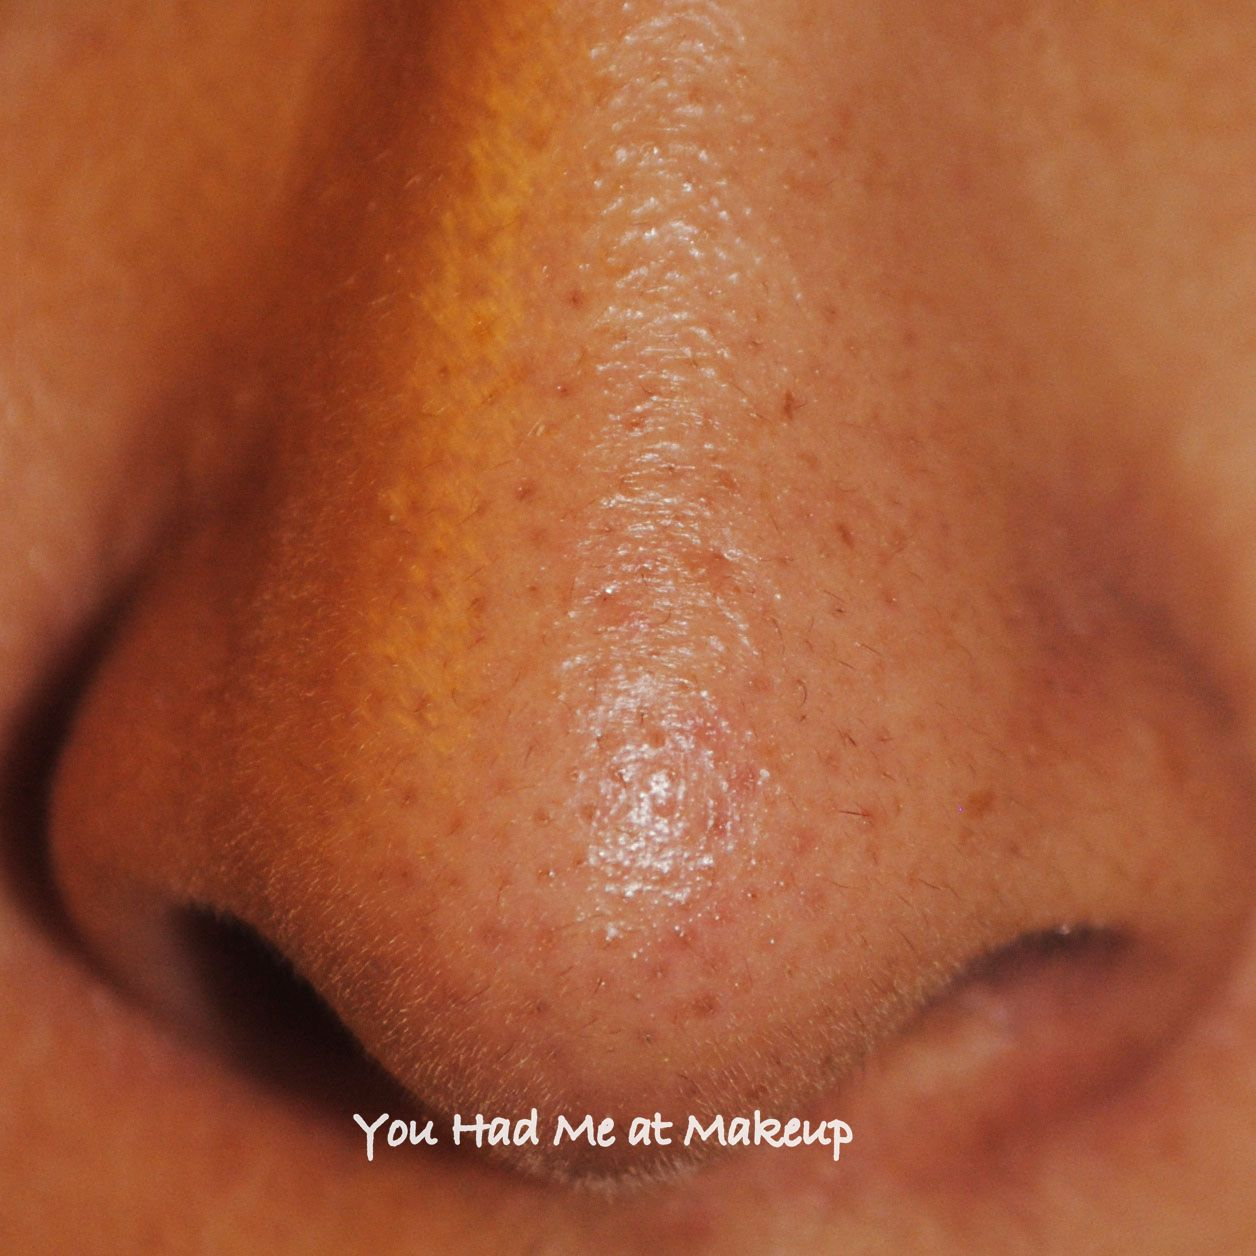 large pores on nose - photo #17